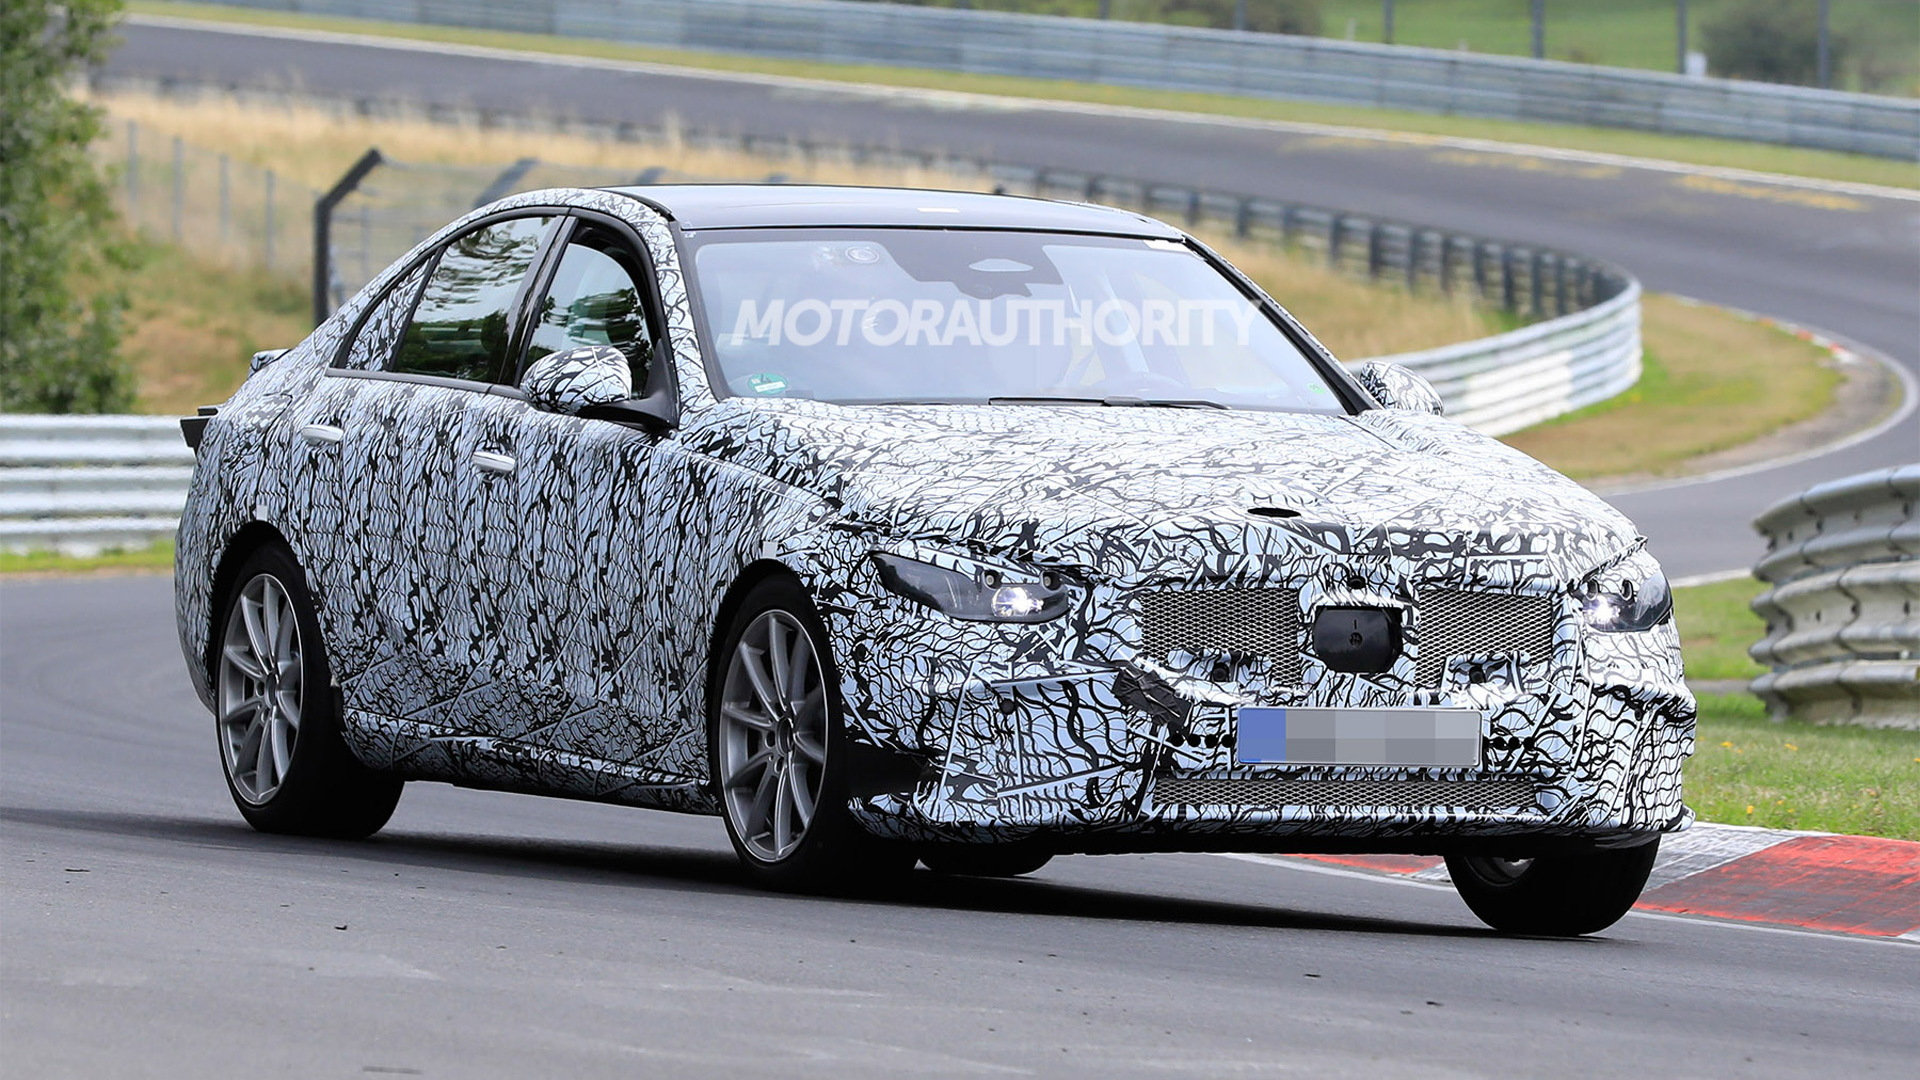 2021 Mercedes-Benz C-Class spy shots - Photo credit: S. Baldauf/SB-Medien